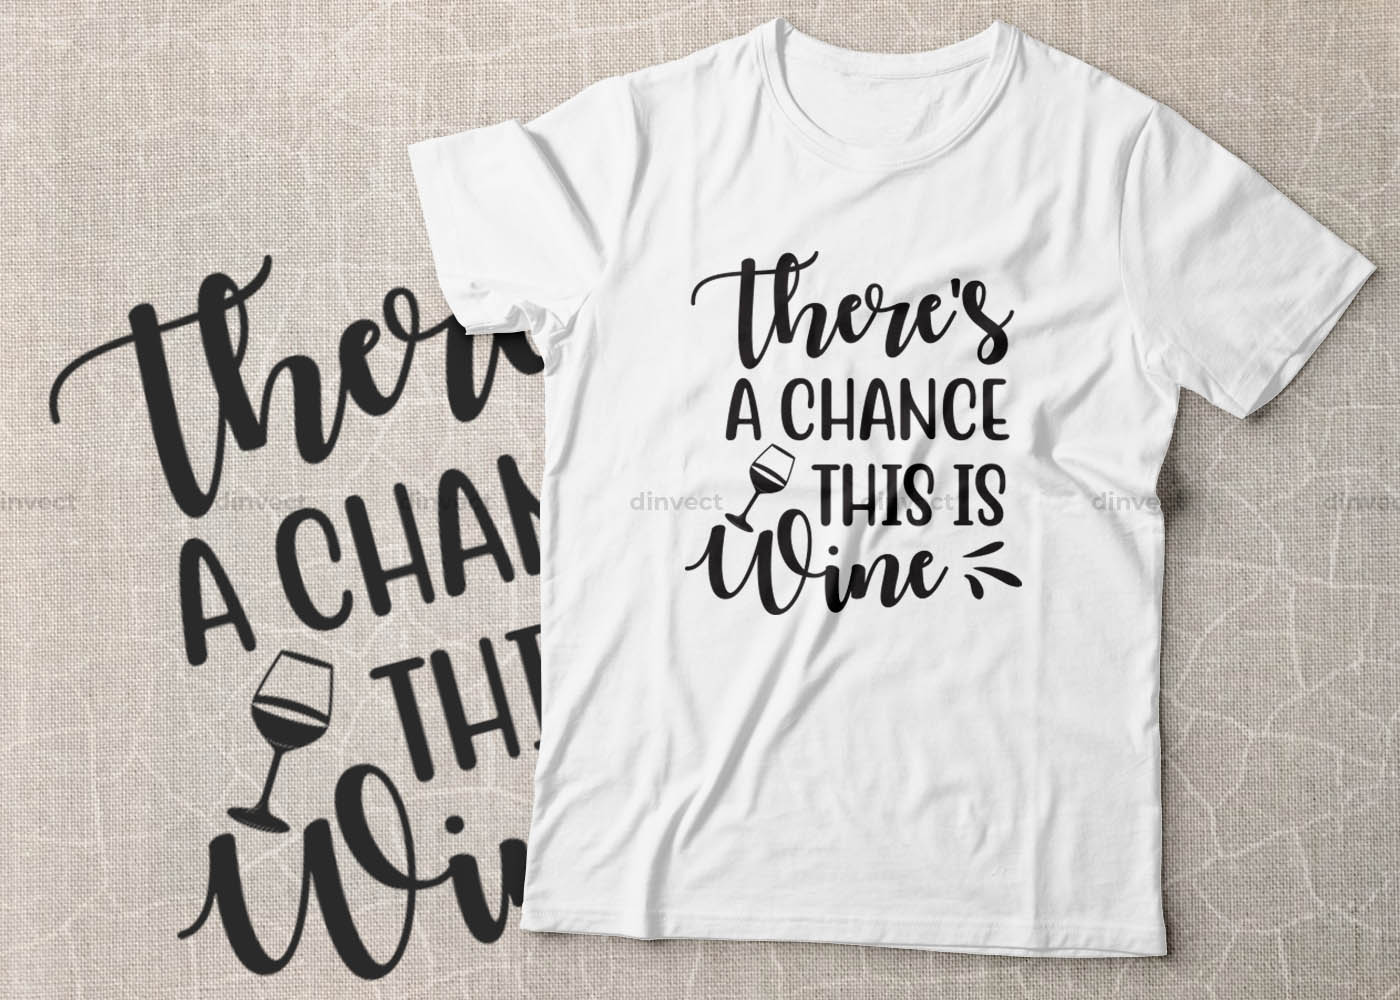 Coffee SVG, Coffee Bundle Svg, Coffee Mug Svg, Funny Coffee Quotes SVG, Mug Design Svg - Theres a chance this is wine -